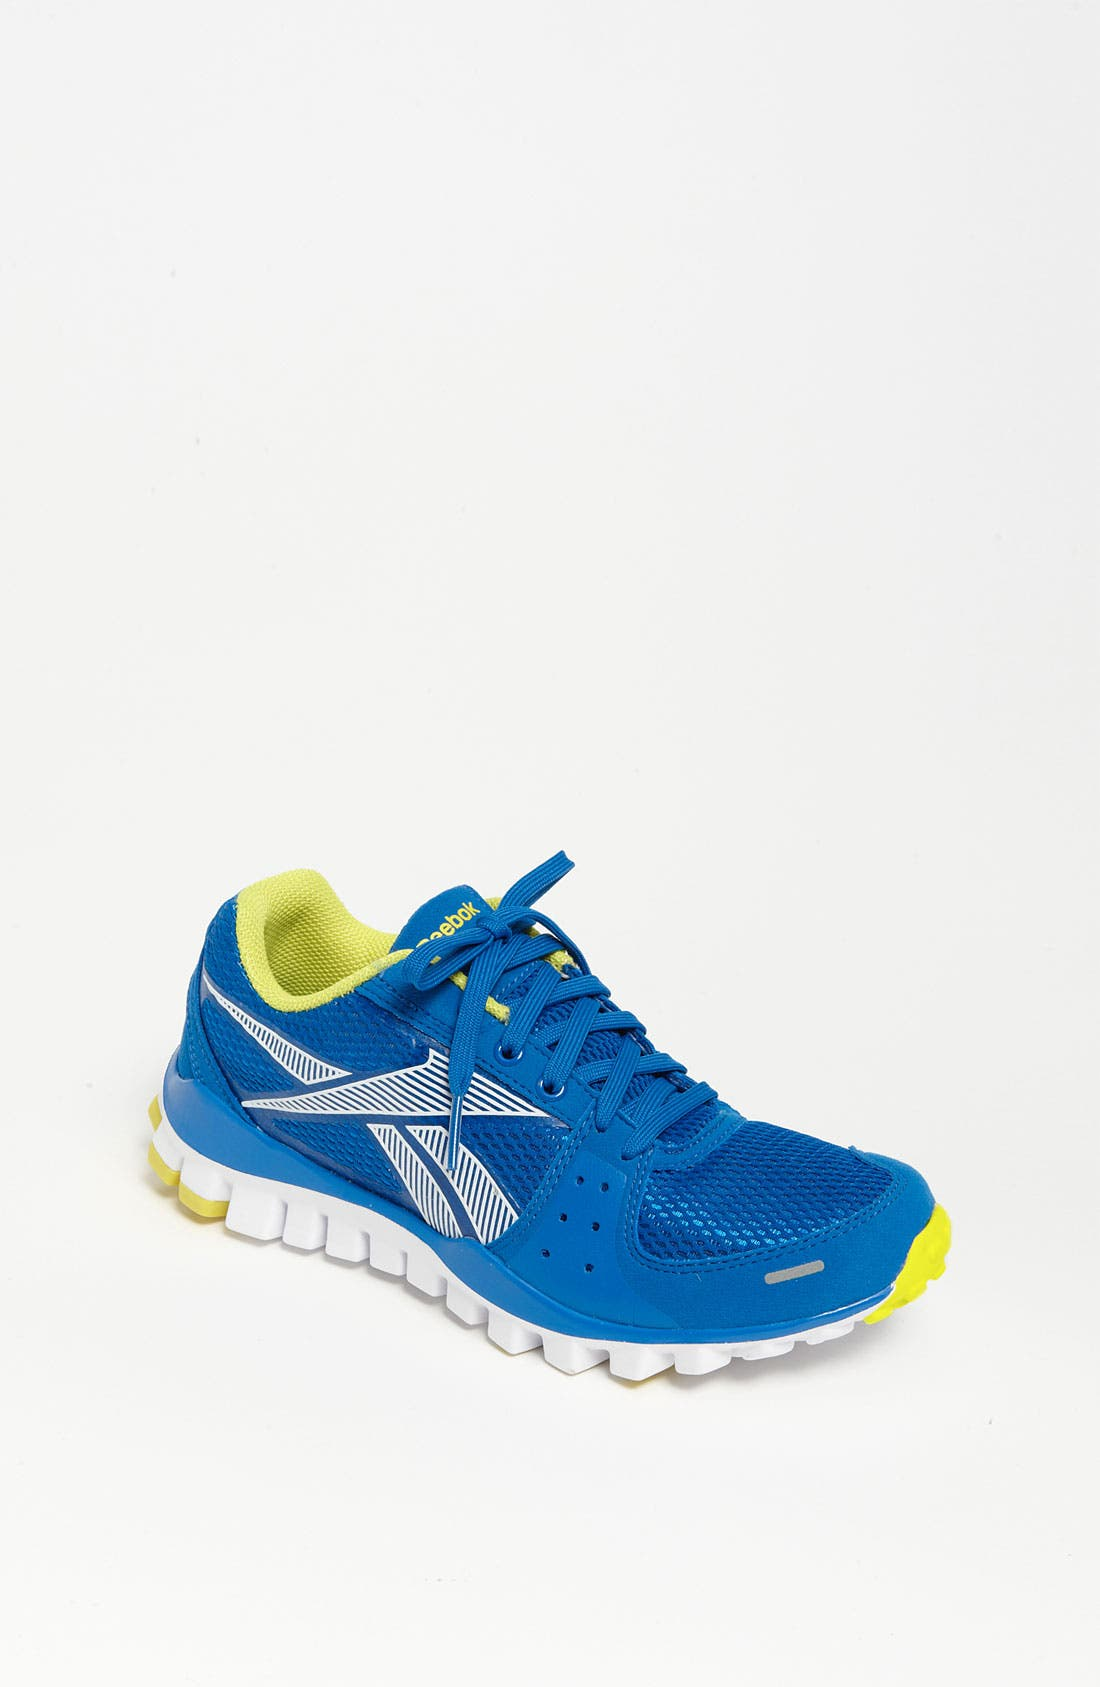 Alternate Image 1 Selected - Reebok 'RealFlex Transition' Sneaker (Little Kid & Big Kid)